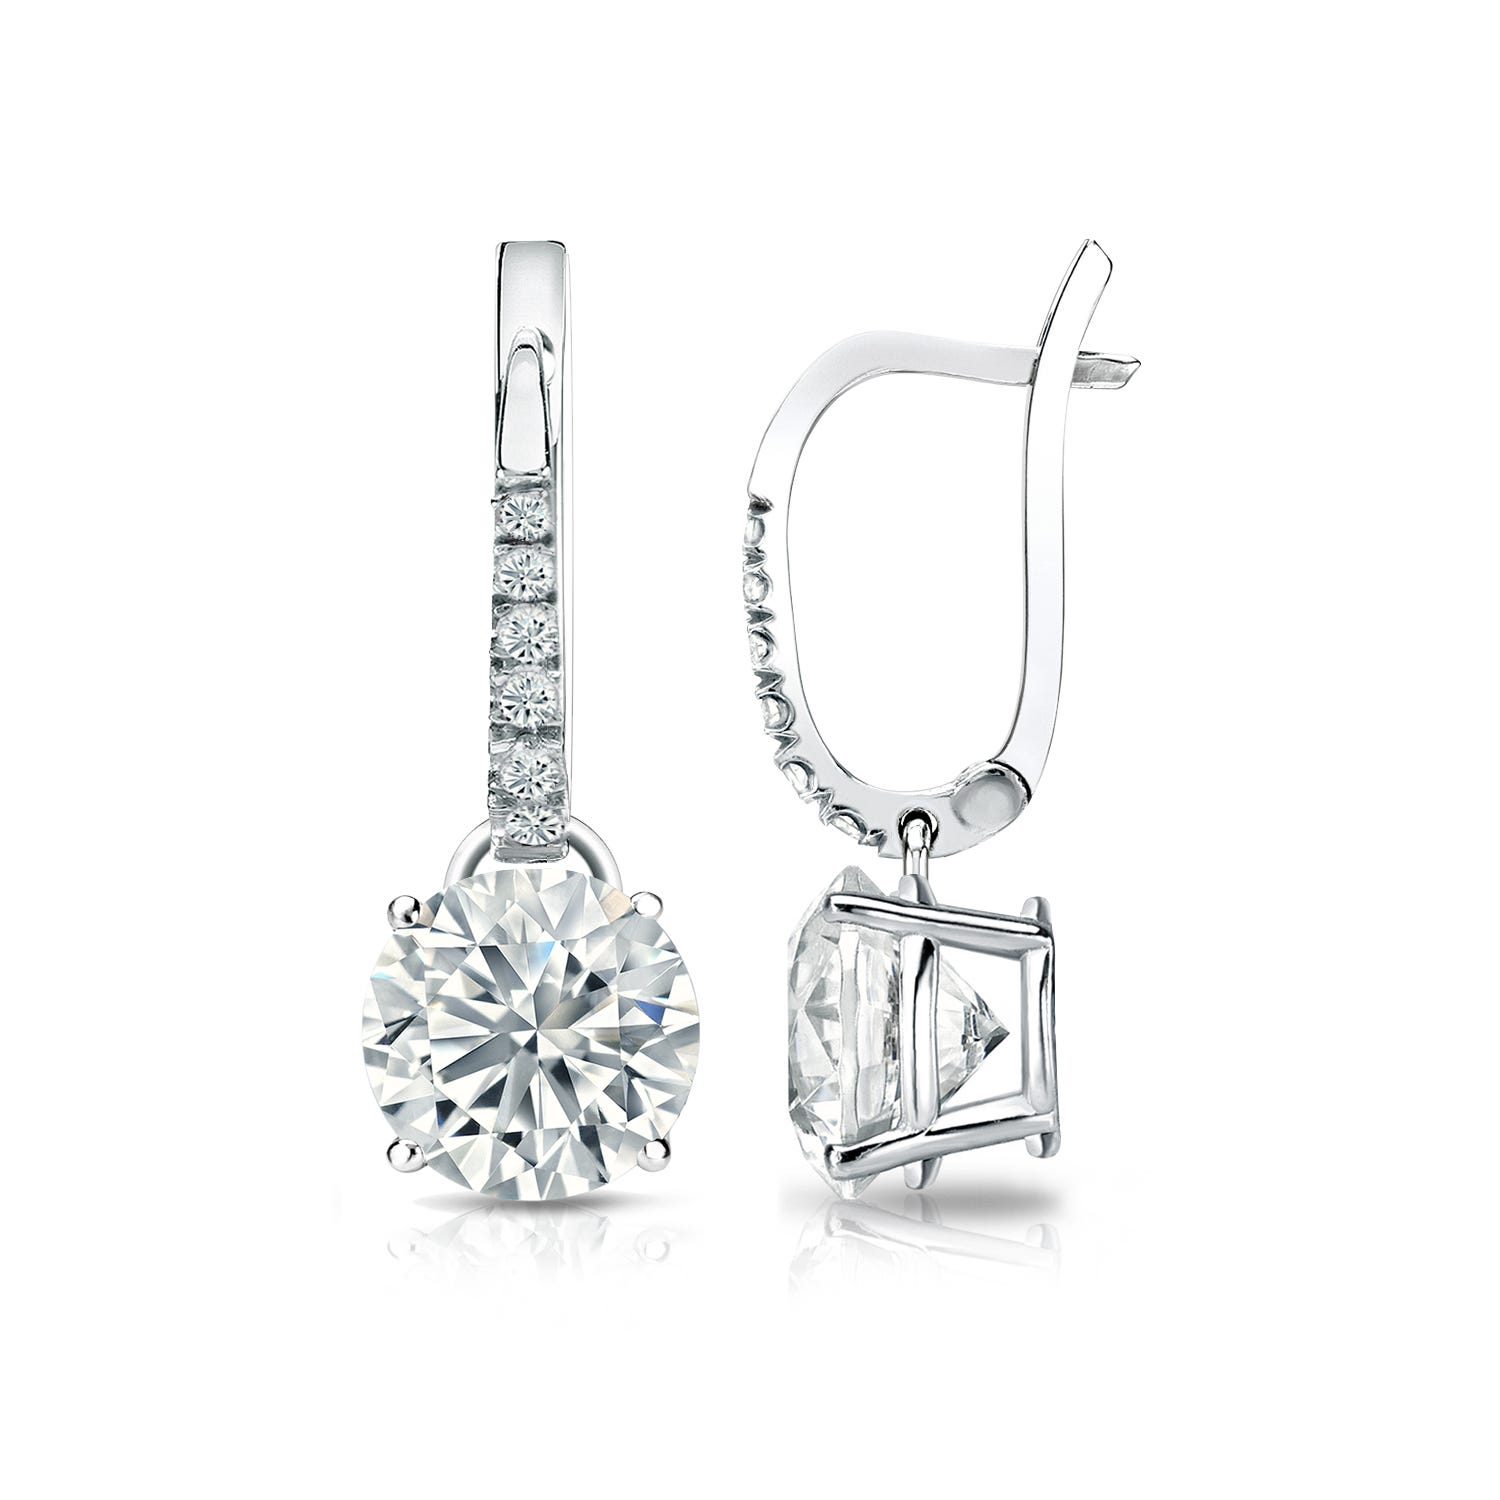 Diamond 2ctw. 4-Prong Round Drop Earrings in 14k White Gold I2 Clarity